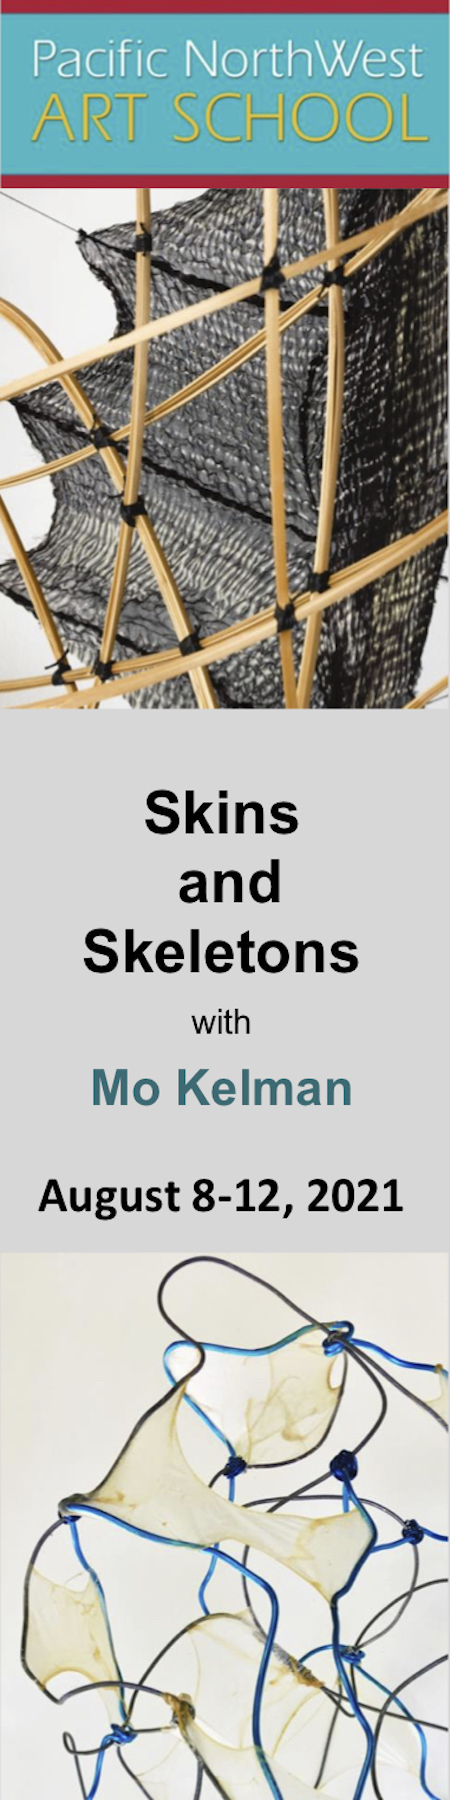 Skins & Skeletons with Mo Kelman - August 8 through 12, 2021